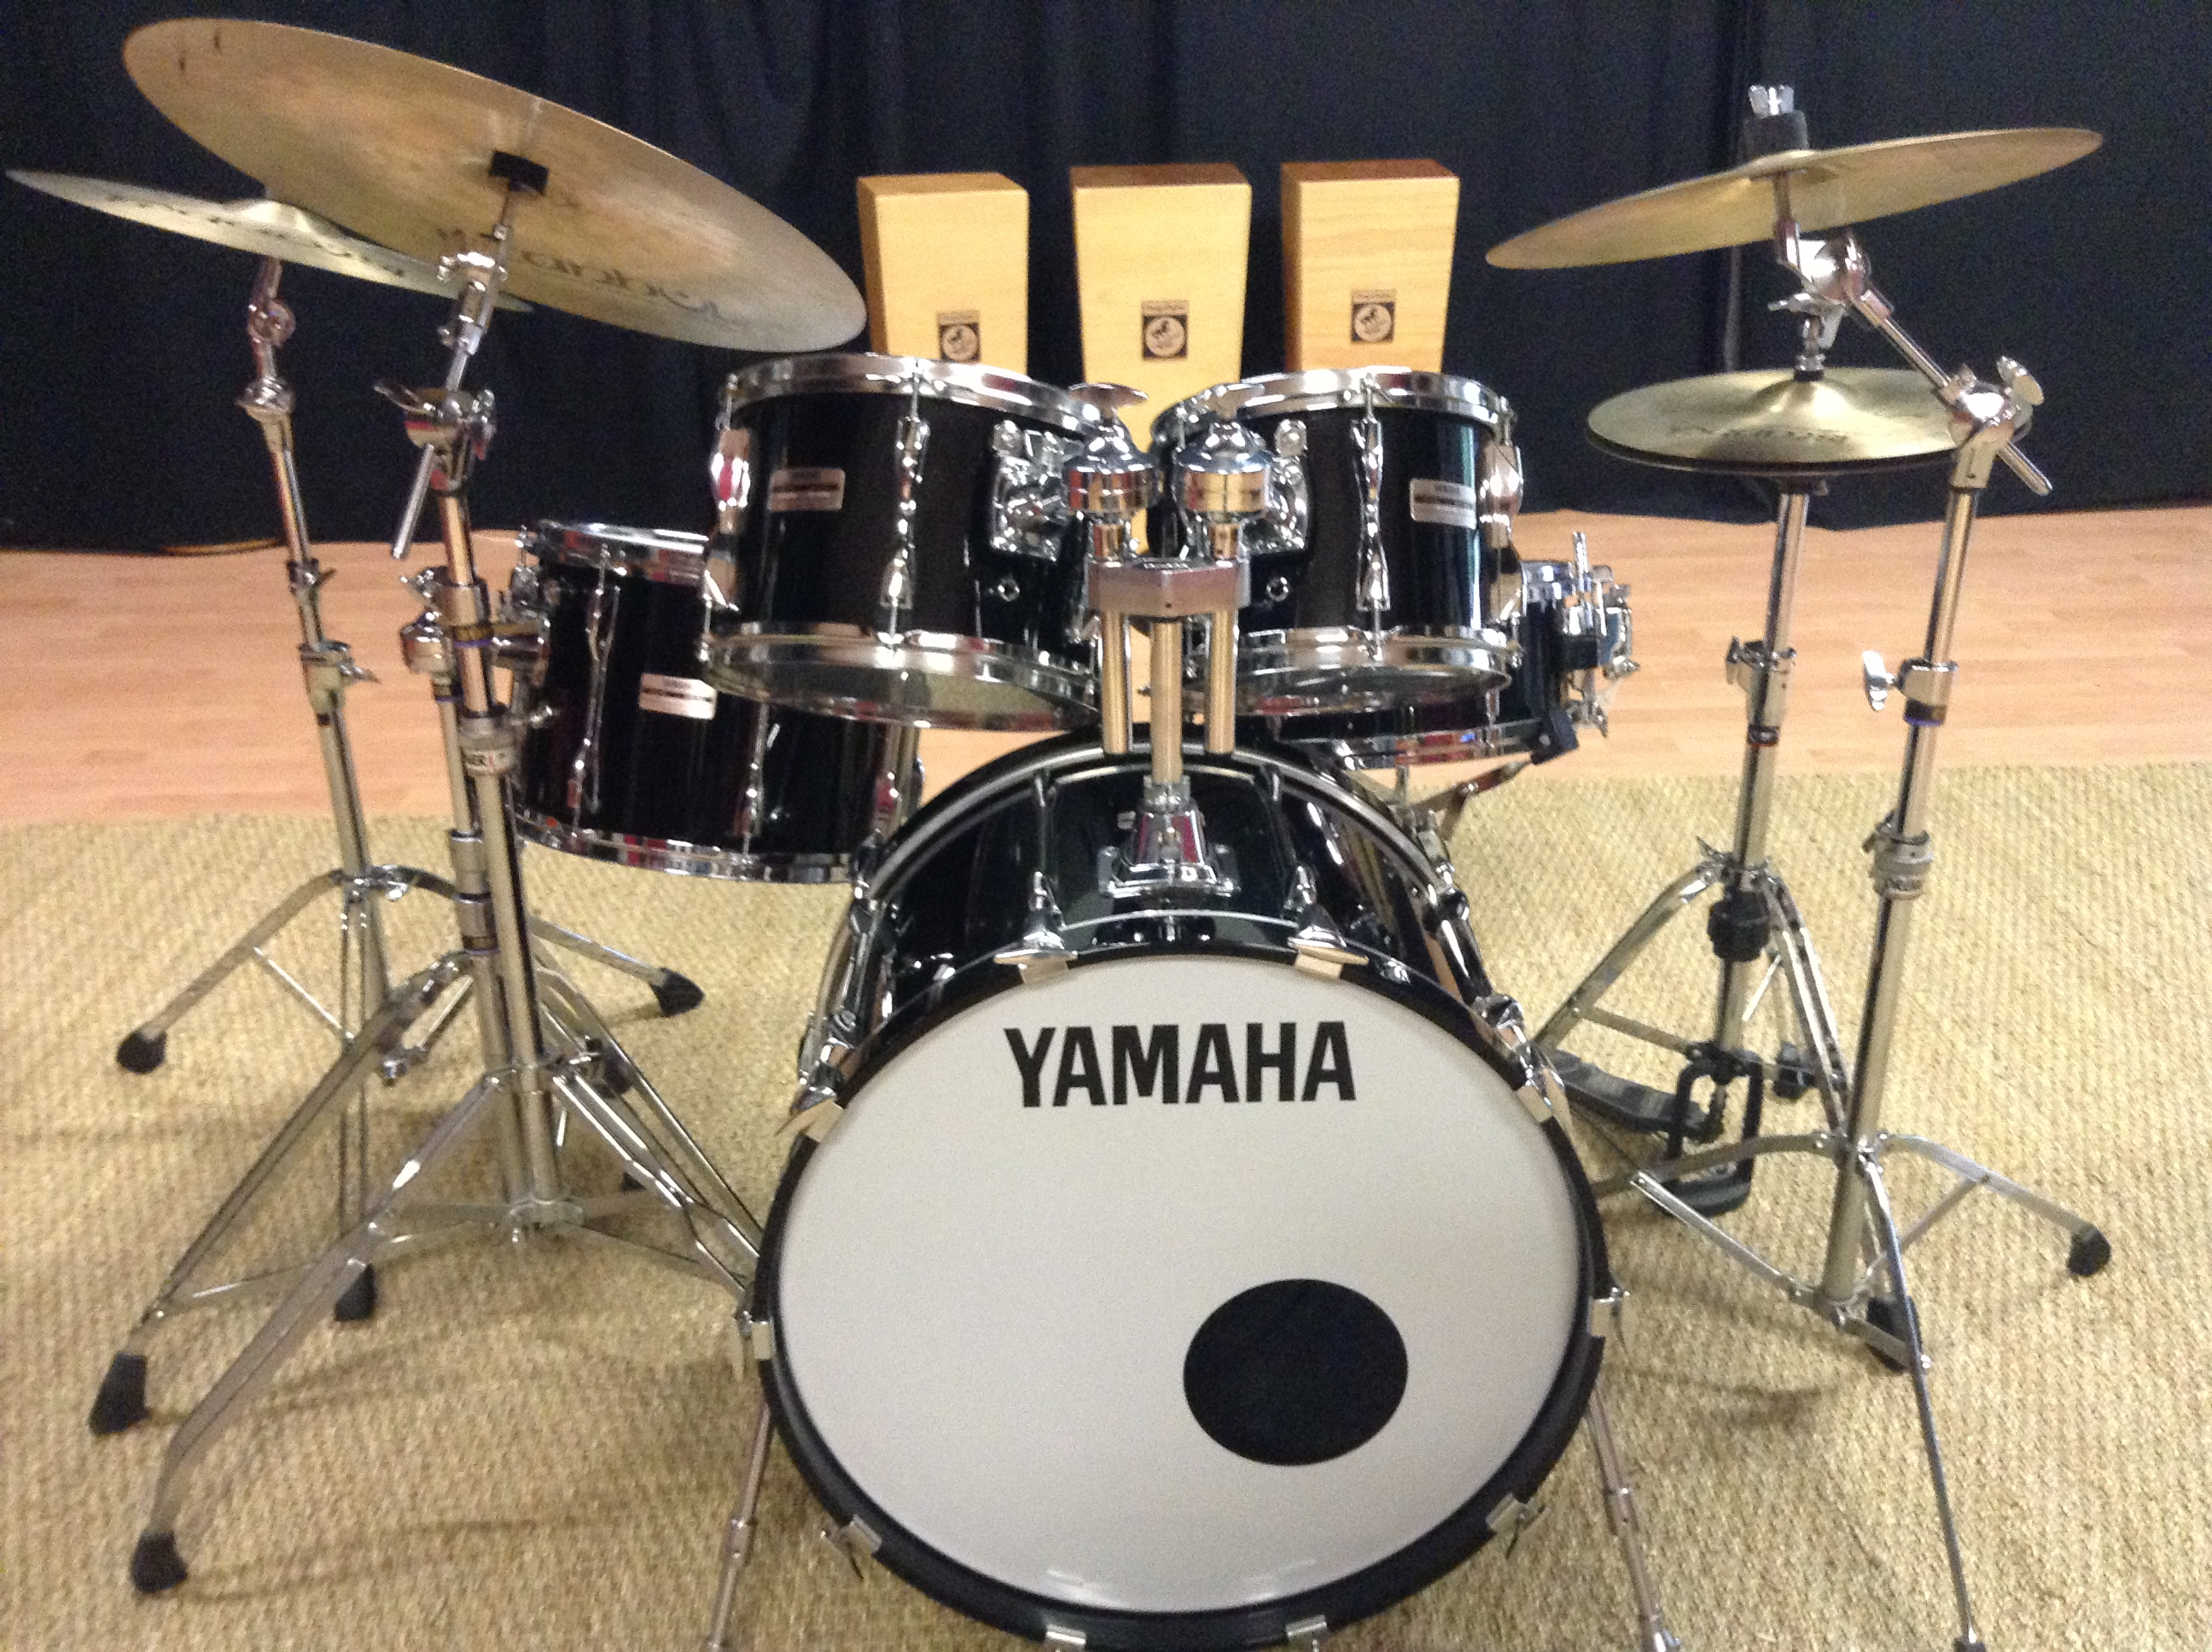 yamaha drums dating guide Nick hopkin drums is a uk vintage drum specialist, the only vintage drum shop in the uk we source and stock the finest vintage drums, accessories and spare parts we ship to all countries worldwide via our website.